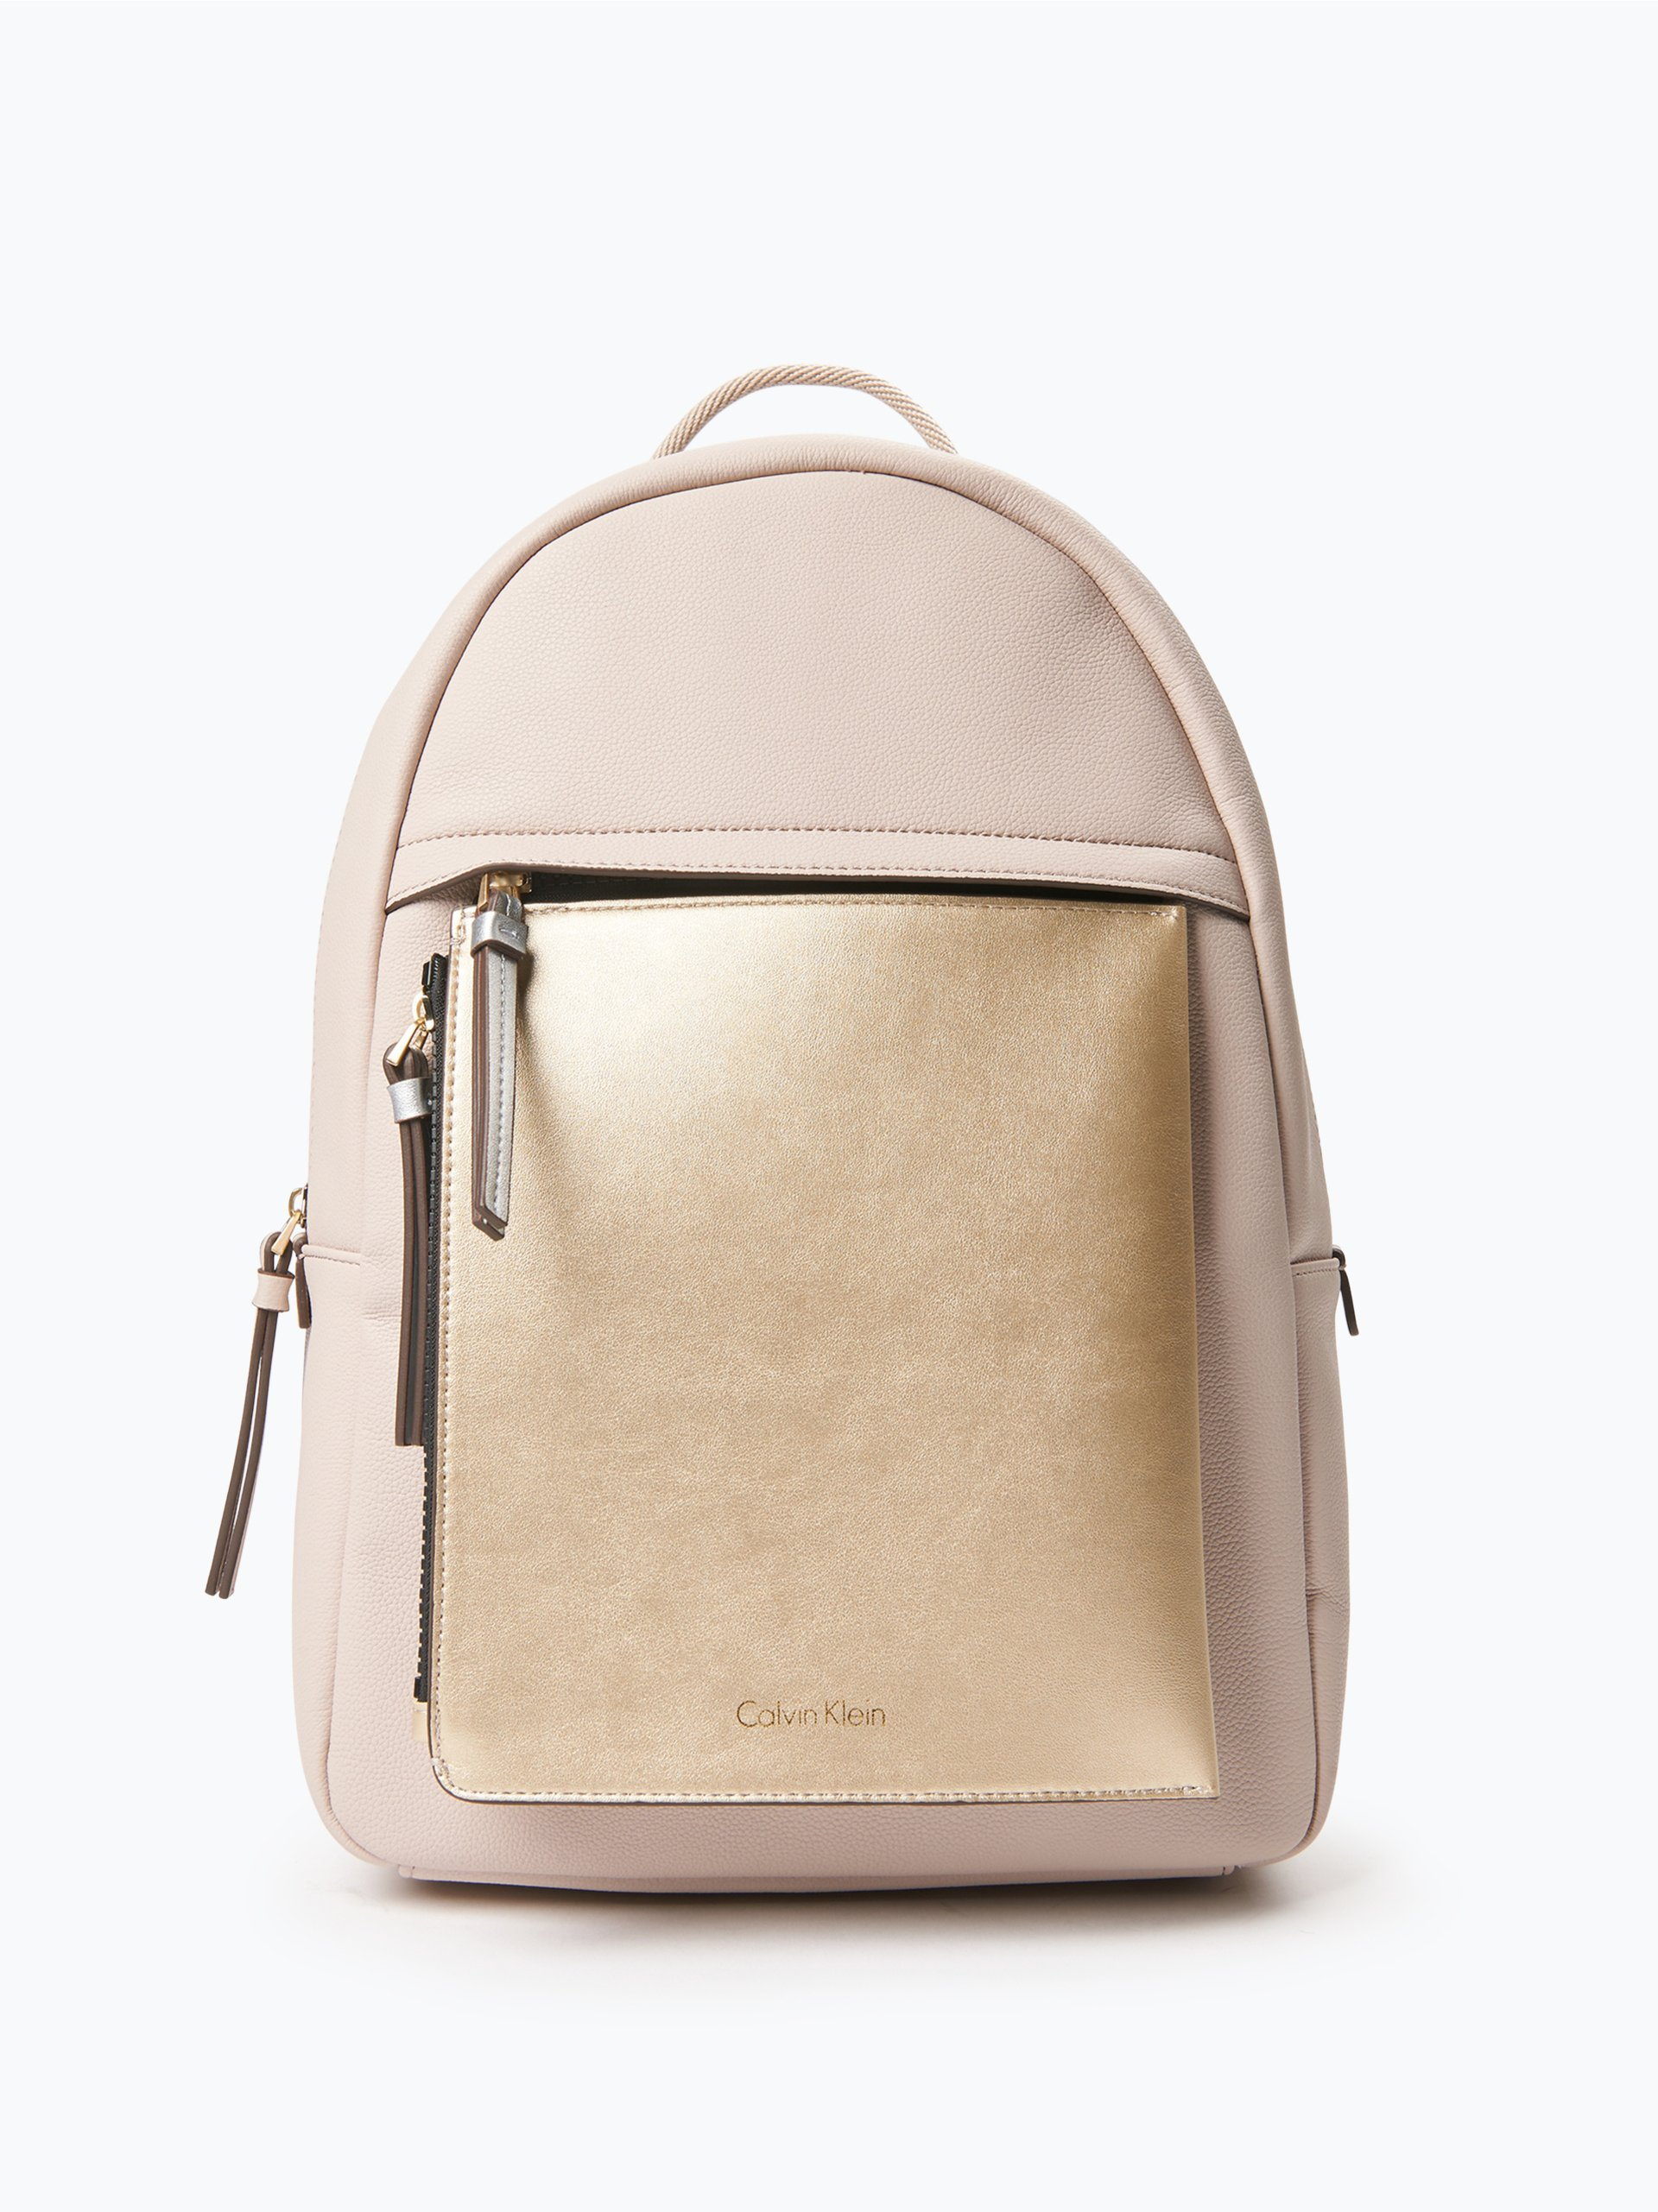 calvin klein damen rucksack in leder optik beige uni online kaufen peek und cloppenburg de. Black Bedroom Furniture Sets. Home Design Ideas